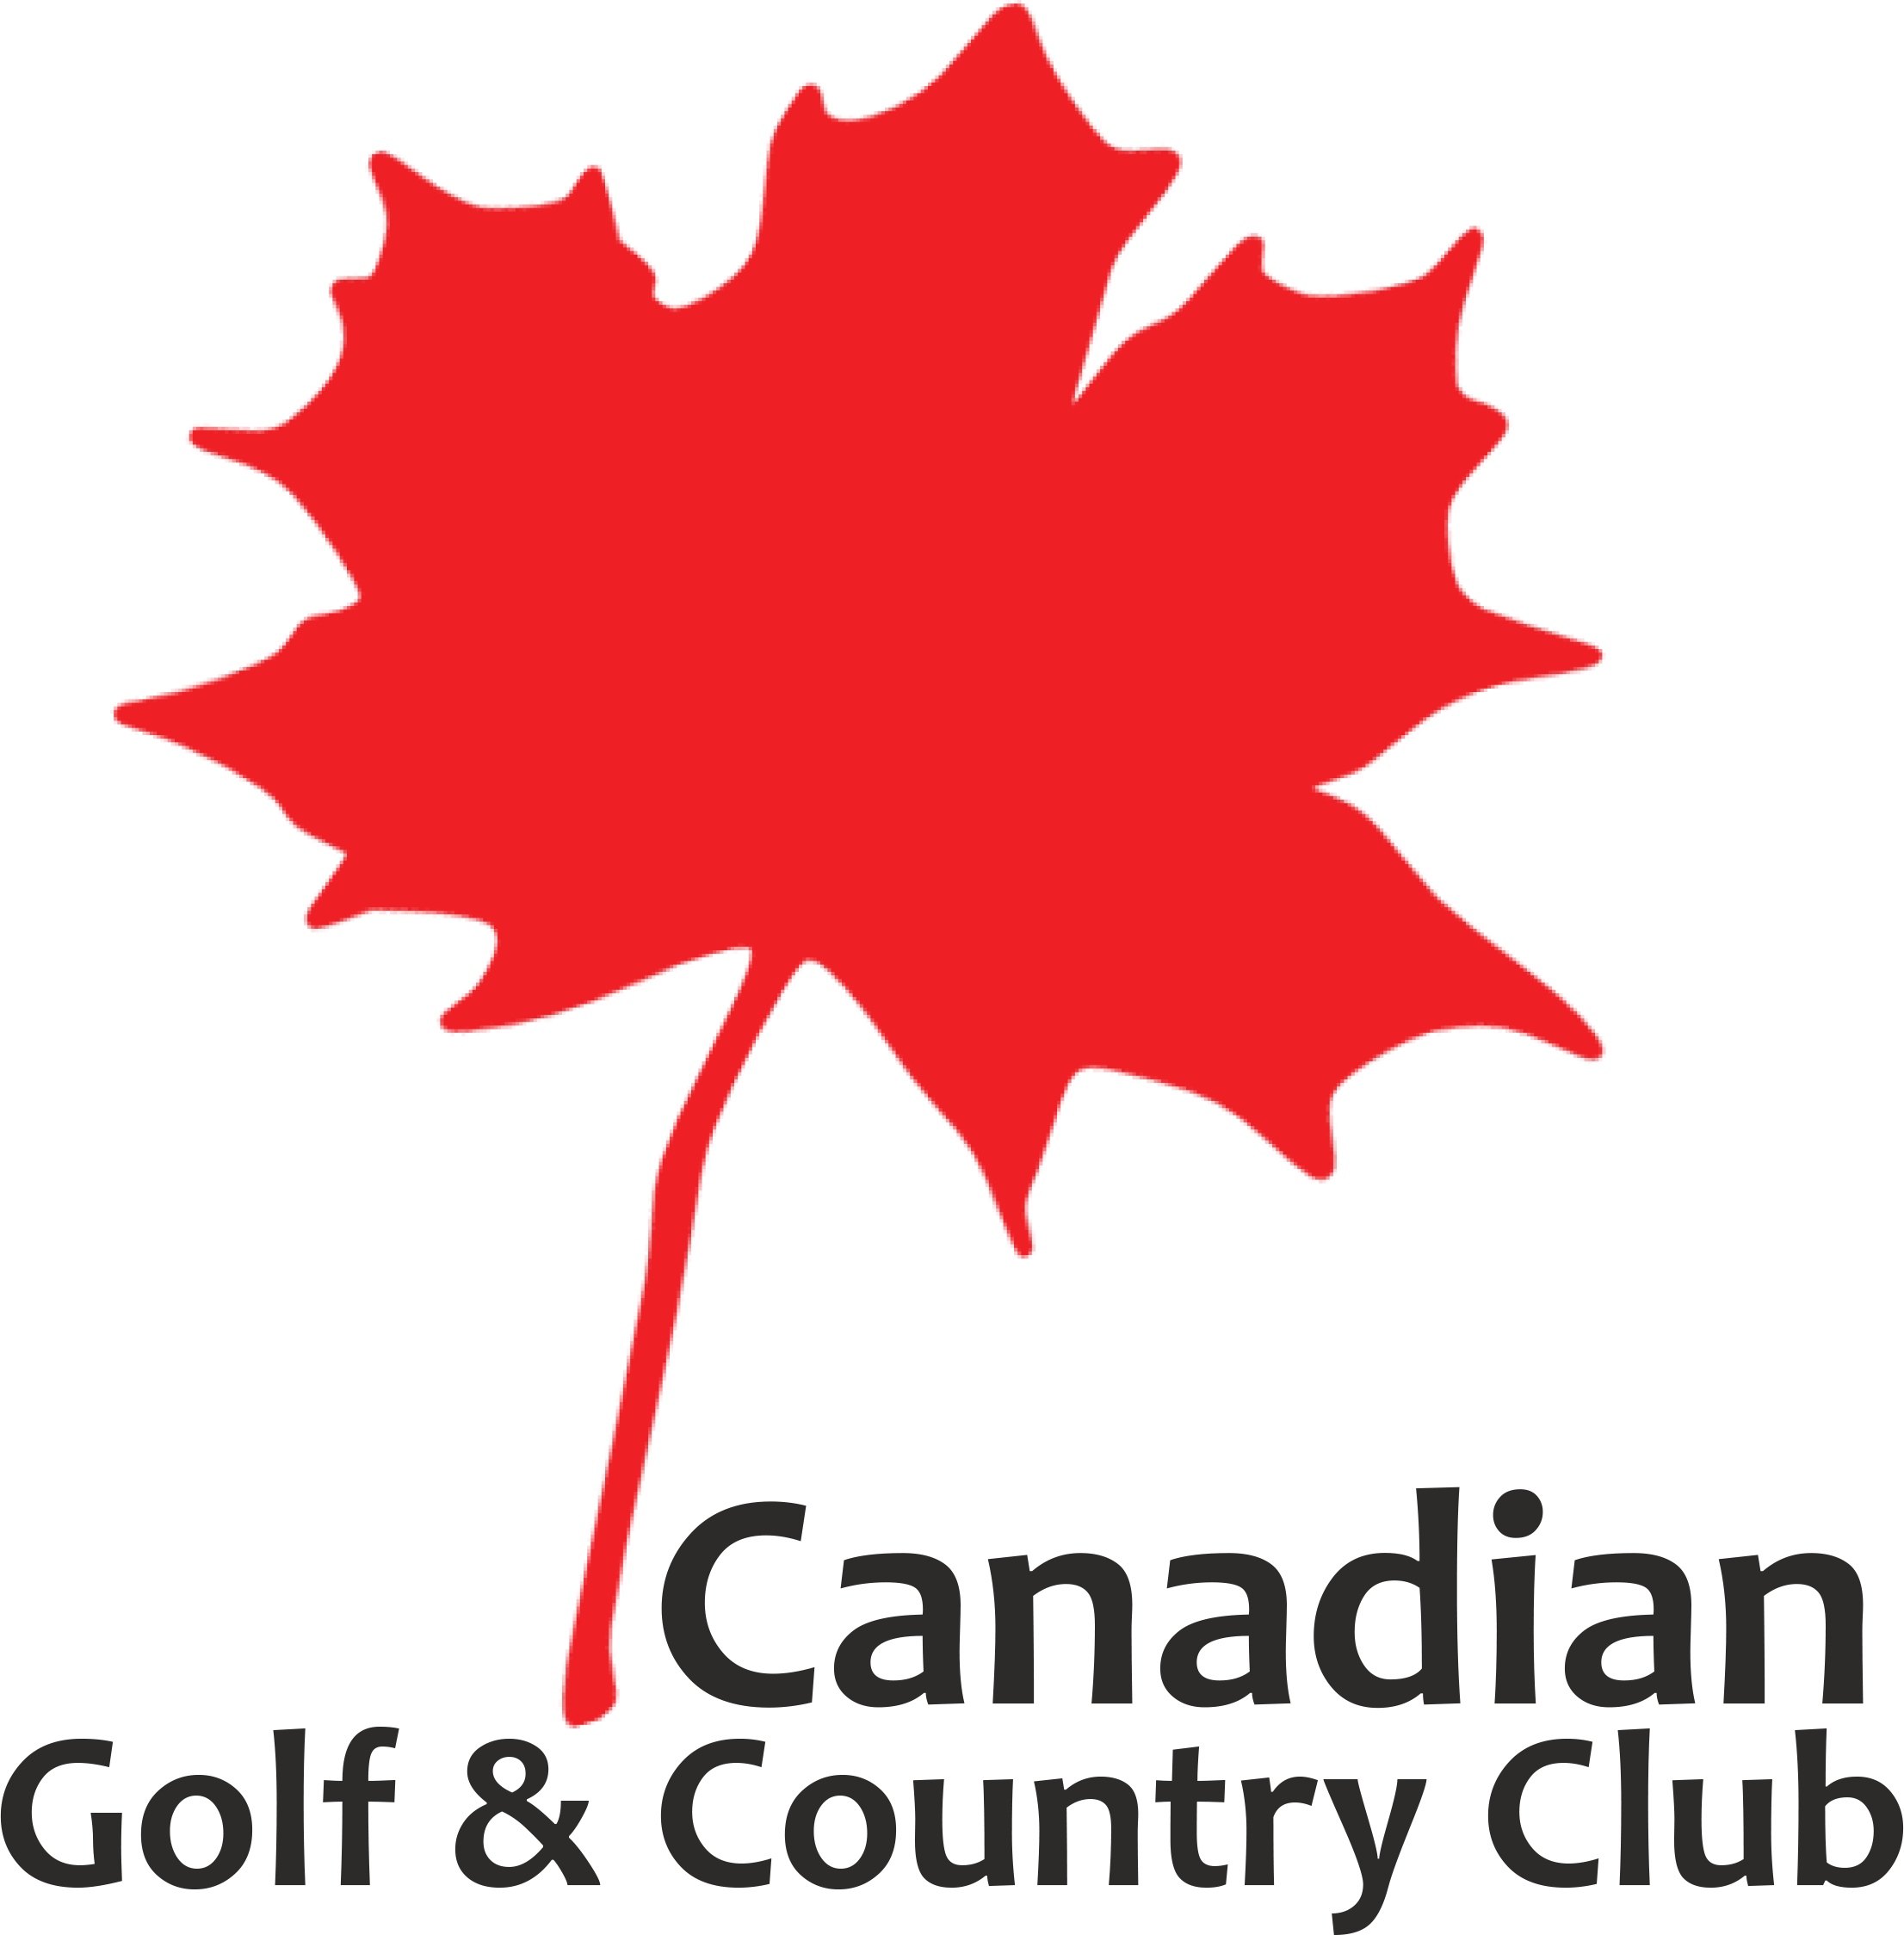 Event Sponsors - Canadian Golf & Country Club - Logo